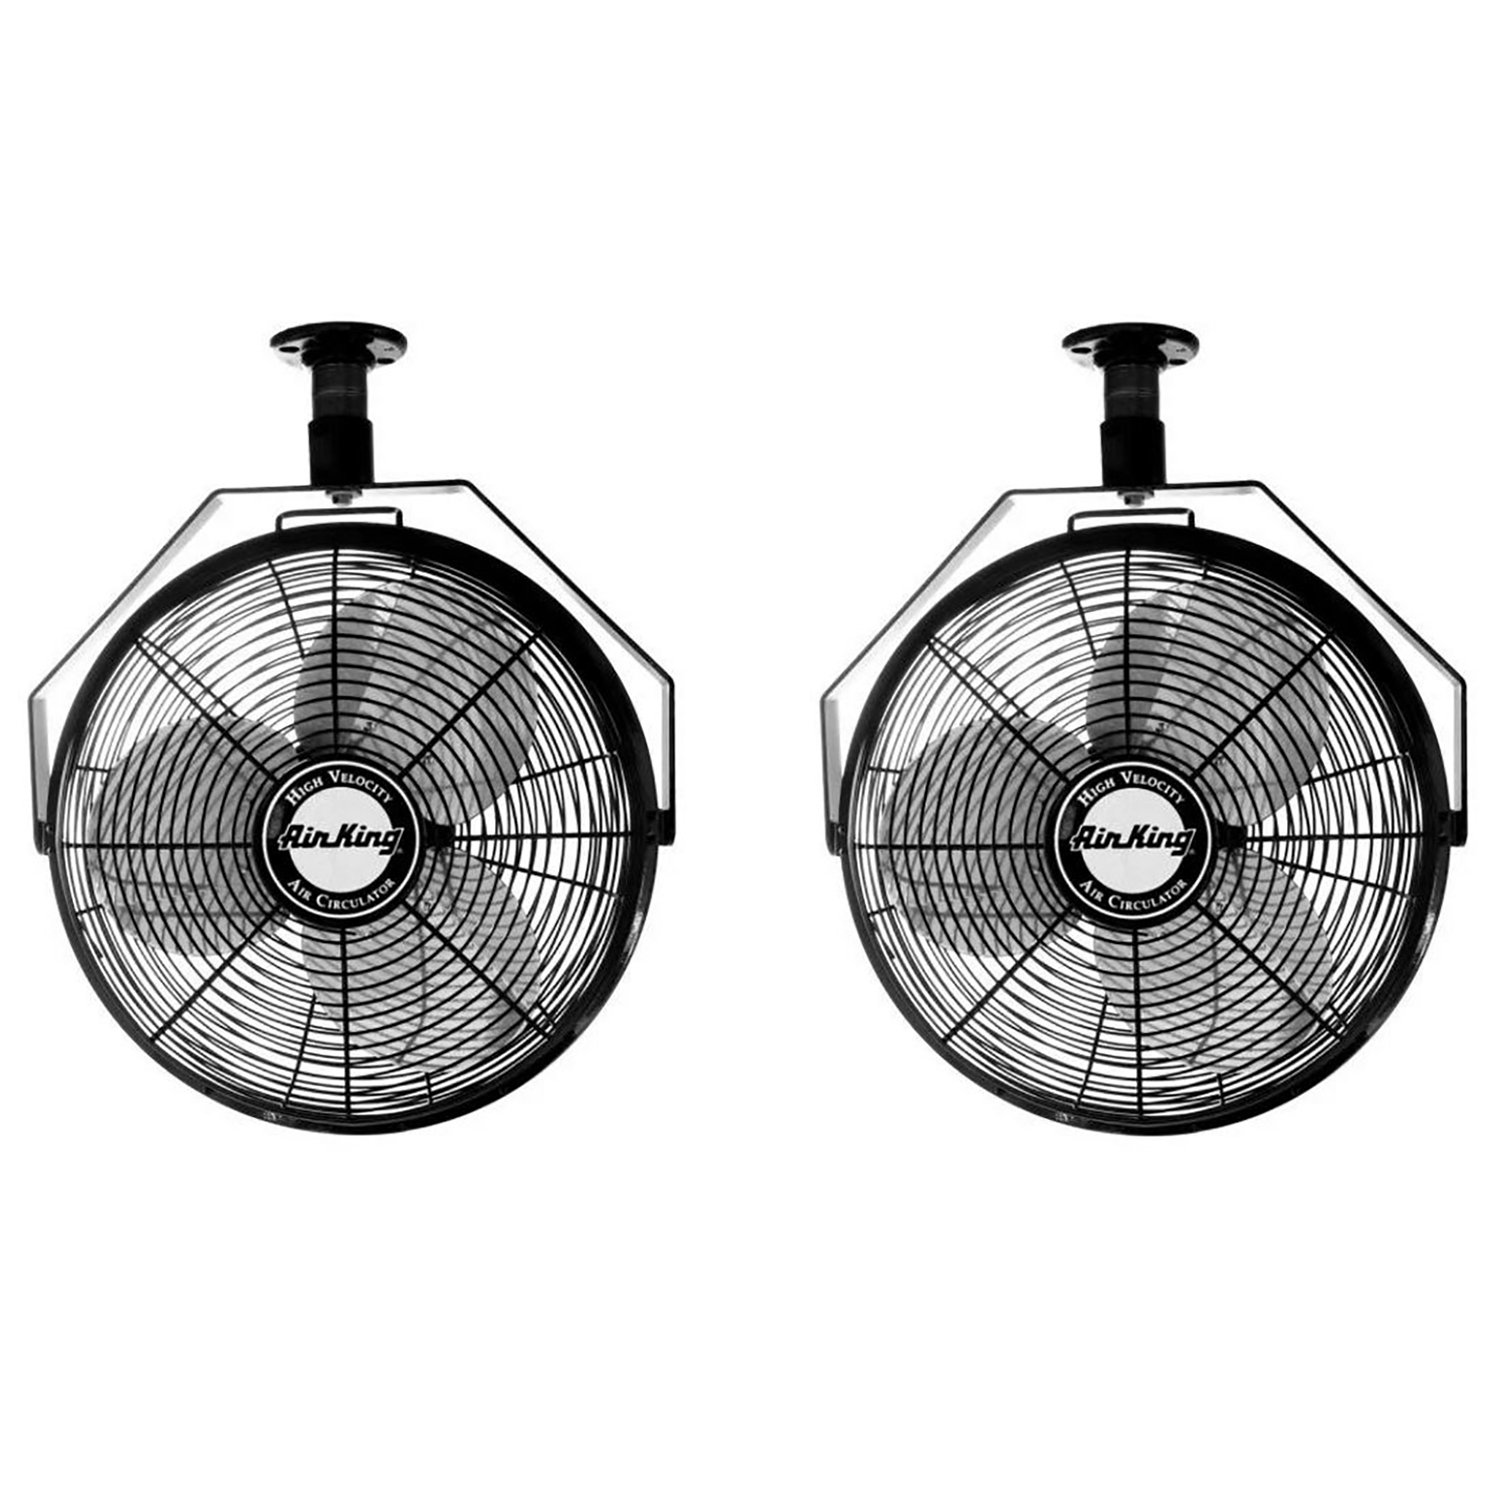 Air King 18'' 1/16 HP 3-Speed Non-Oscillating Enclosed Ceiling Mount Fan (2 Pack)